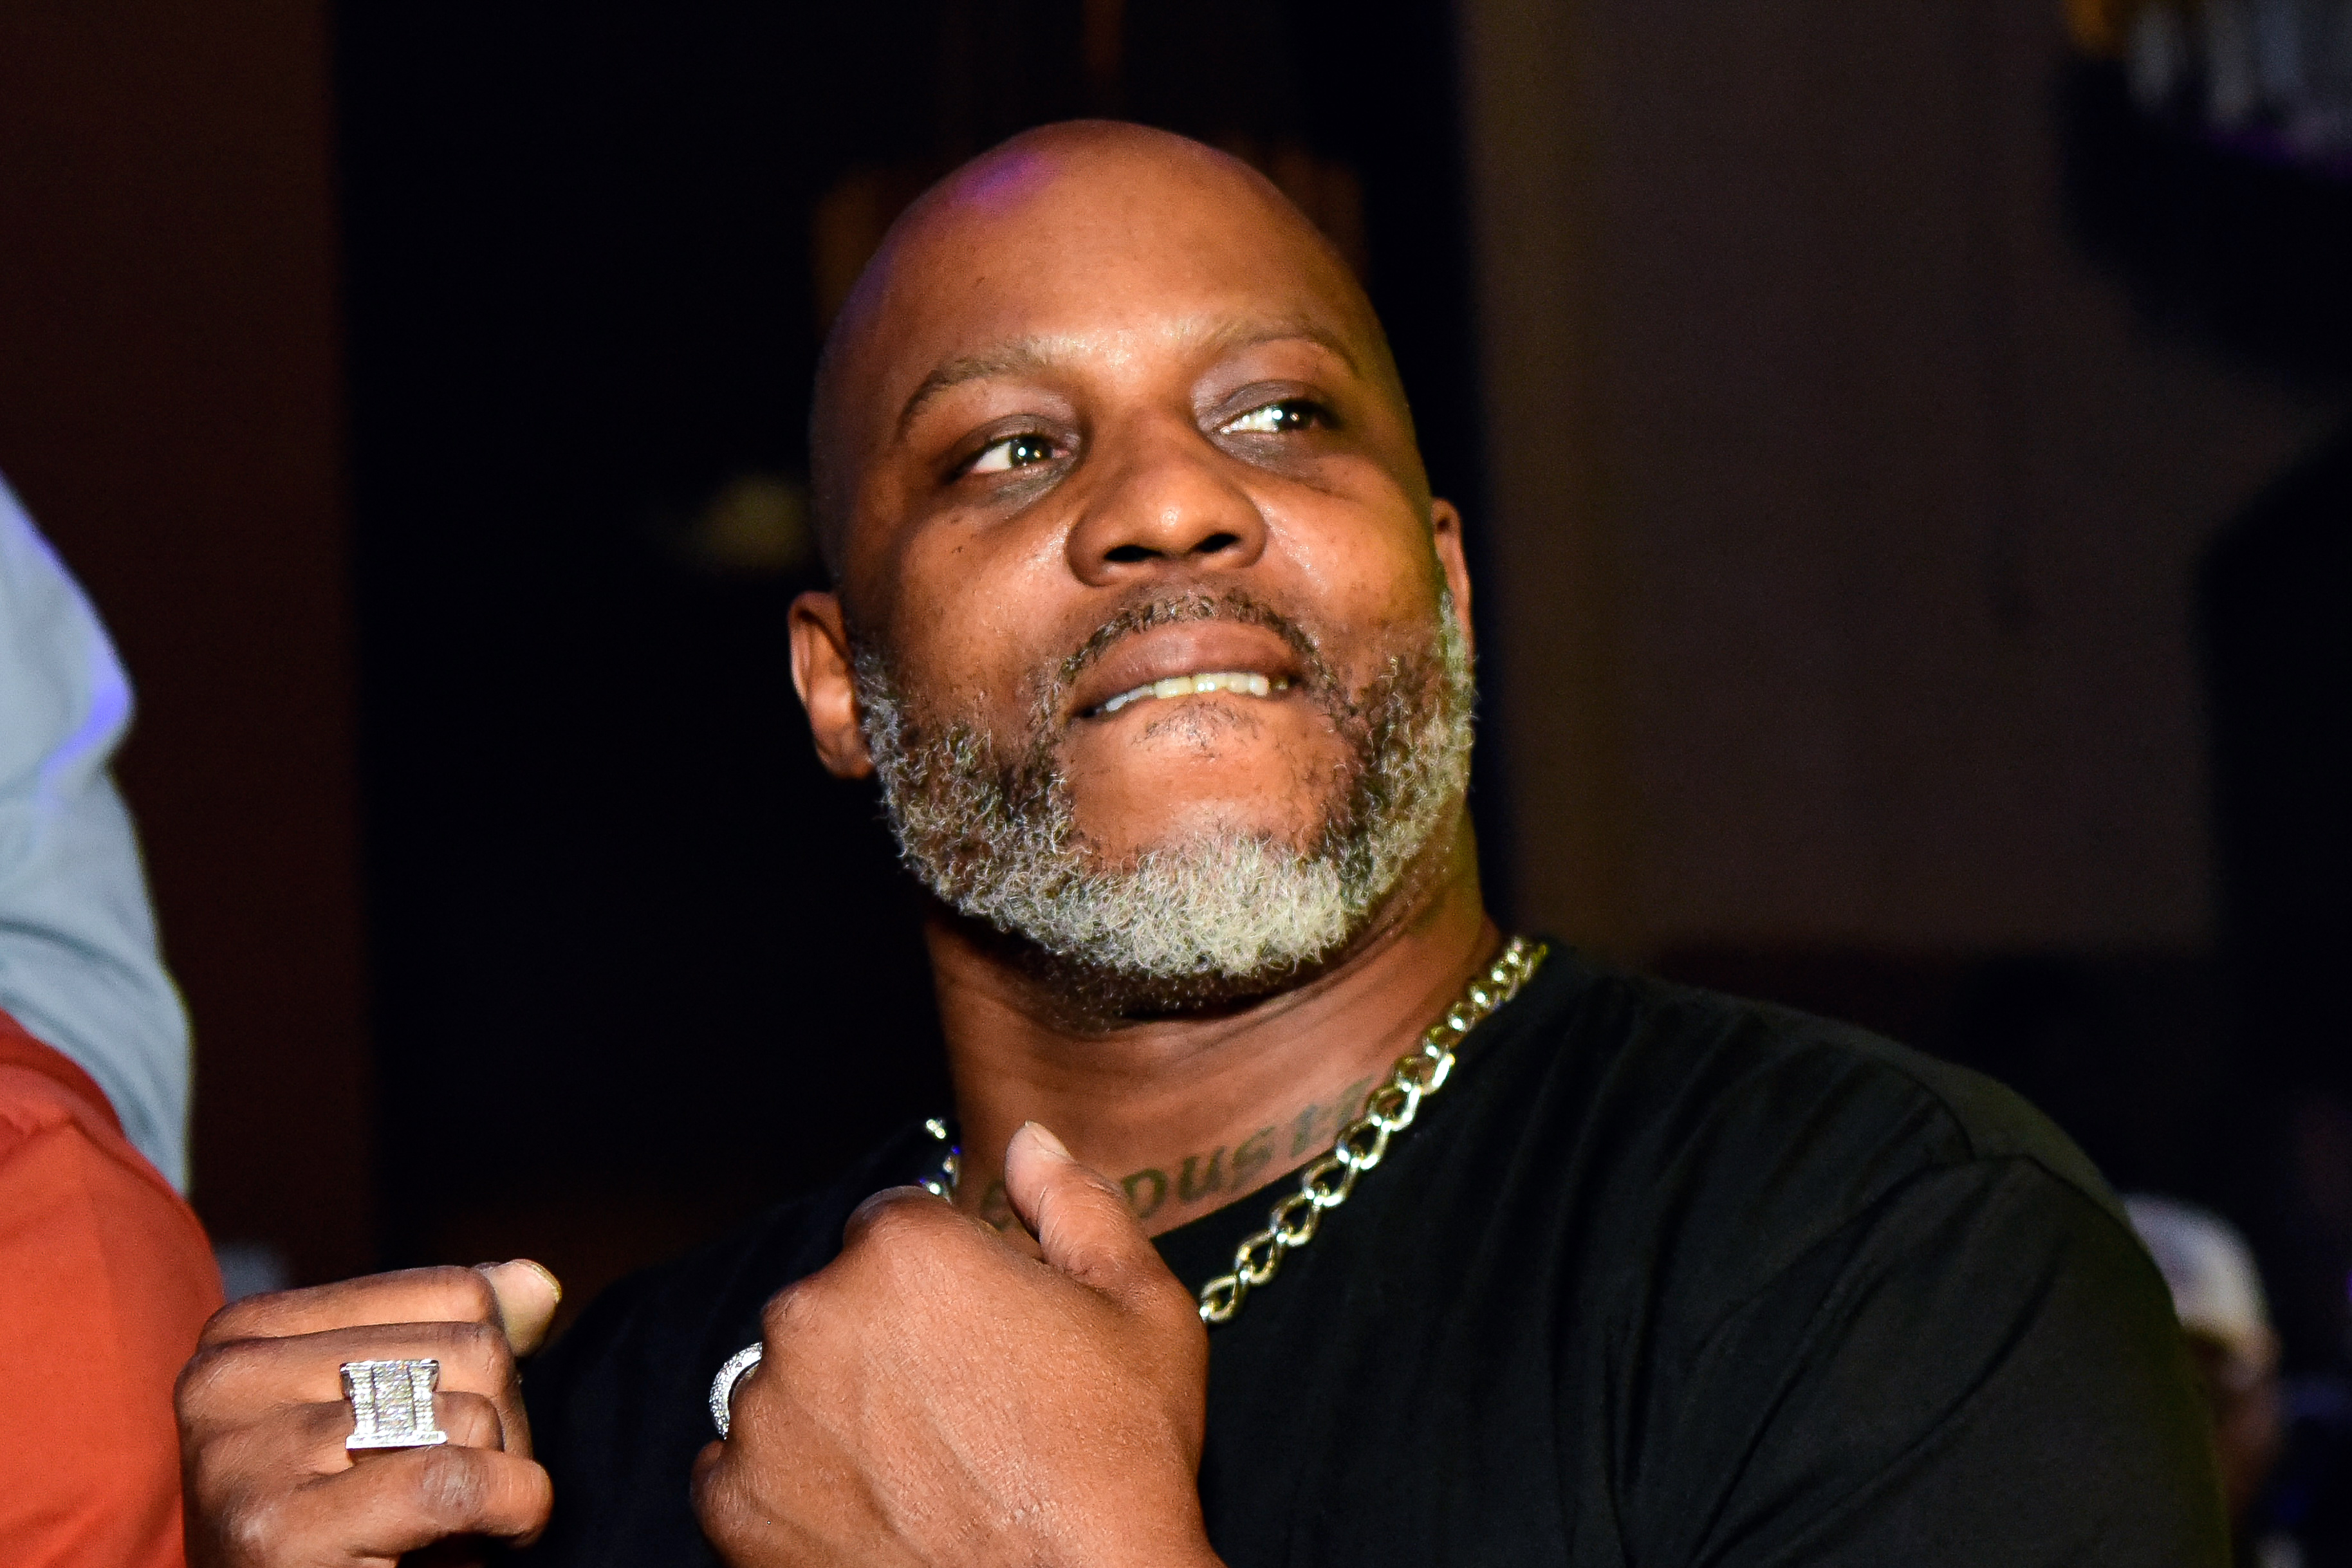 DMX remains on life support after heart attack, lawyer says